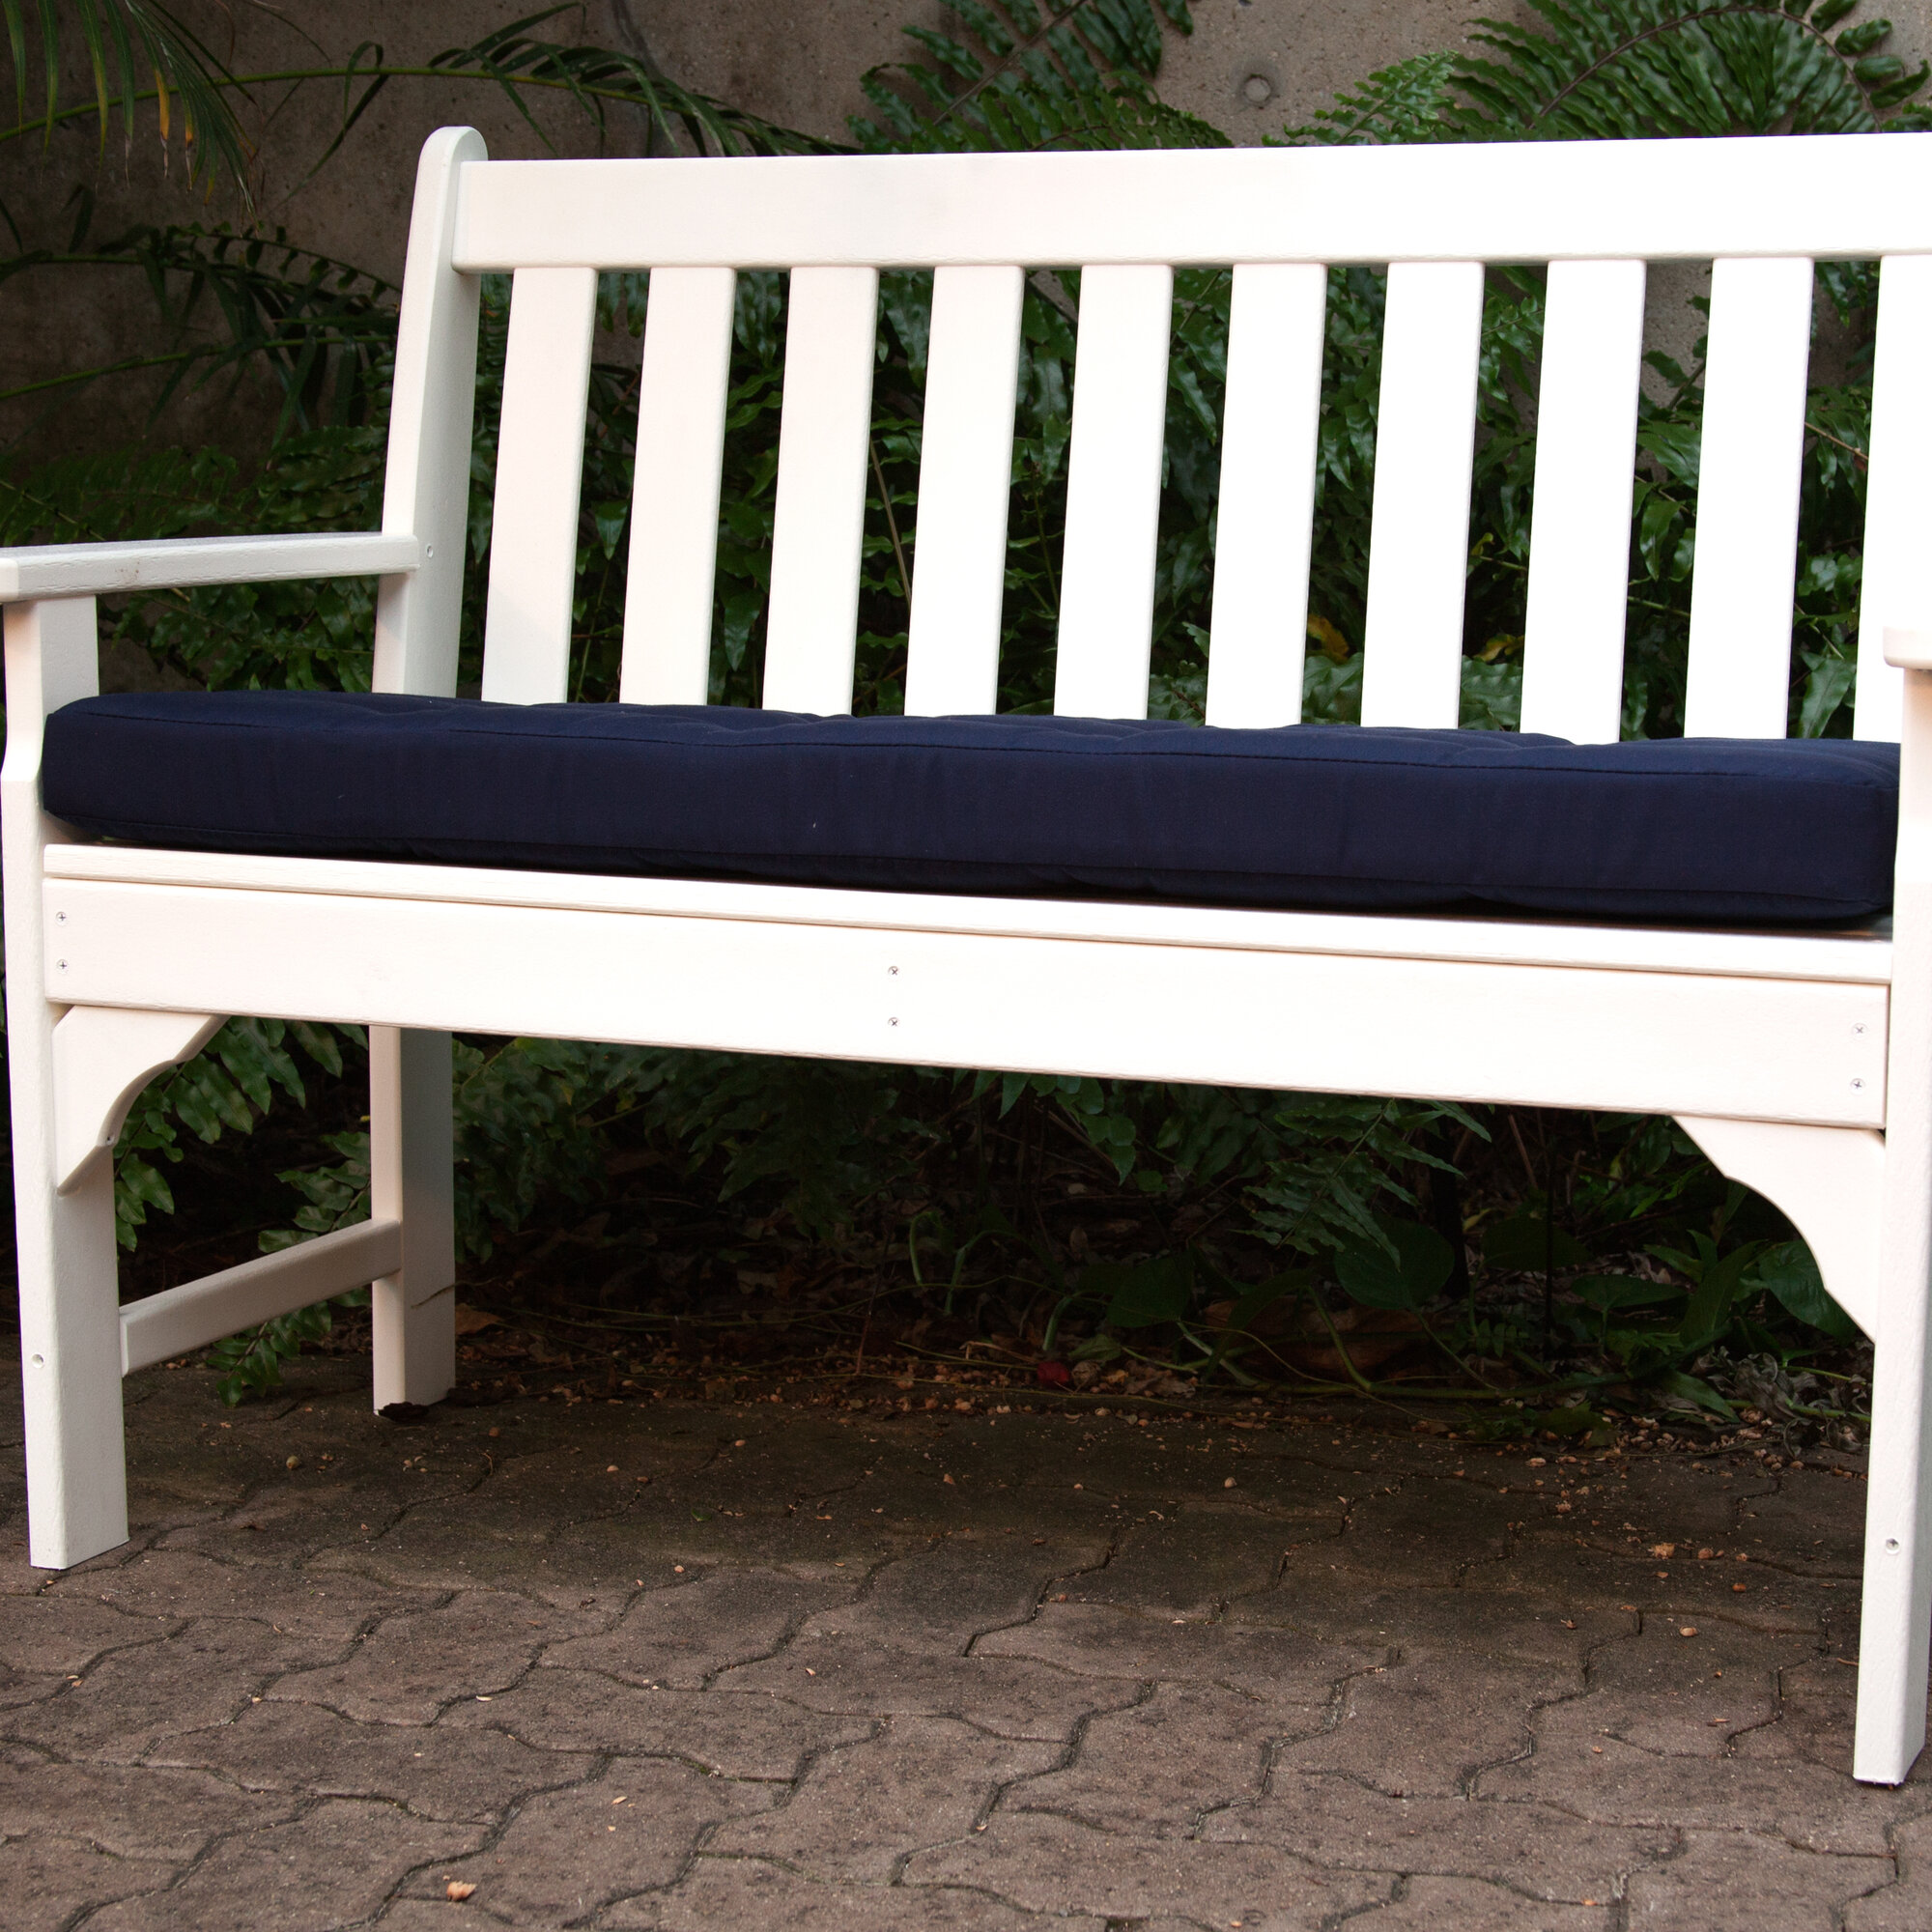 Ateeva Luxe Outdoor Sunbrella Bench Cushion Ebay